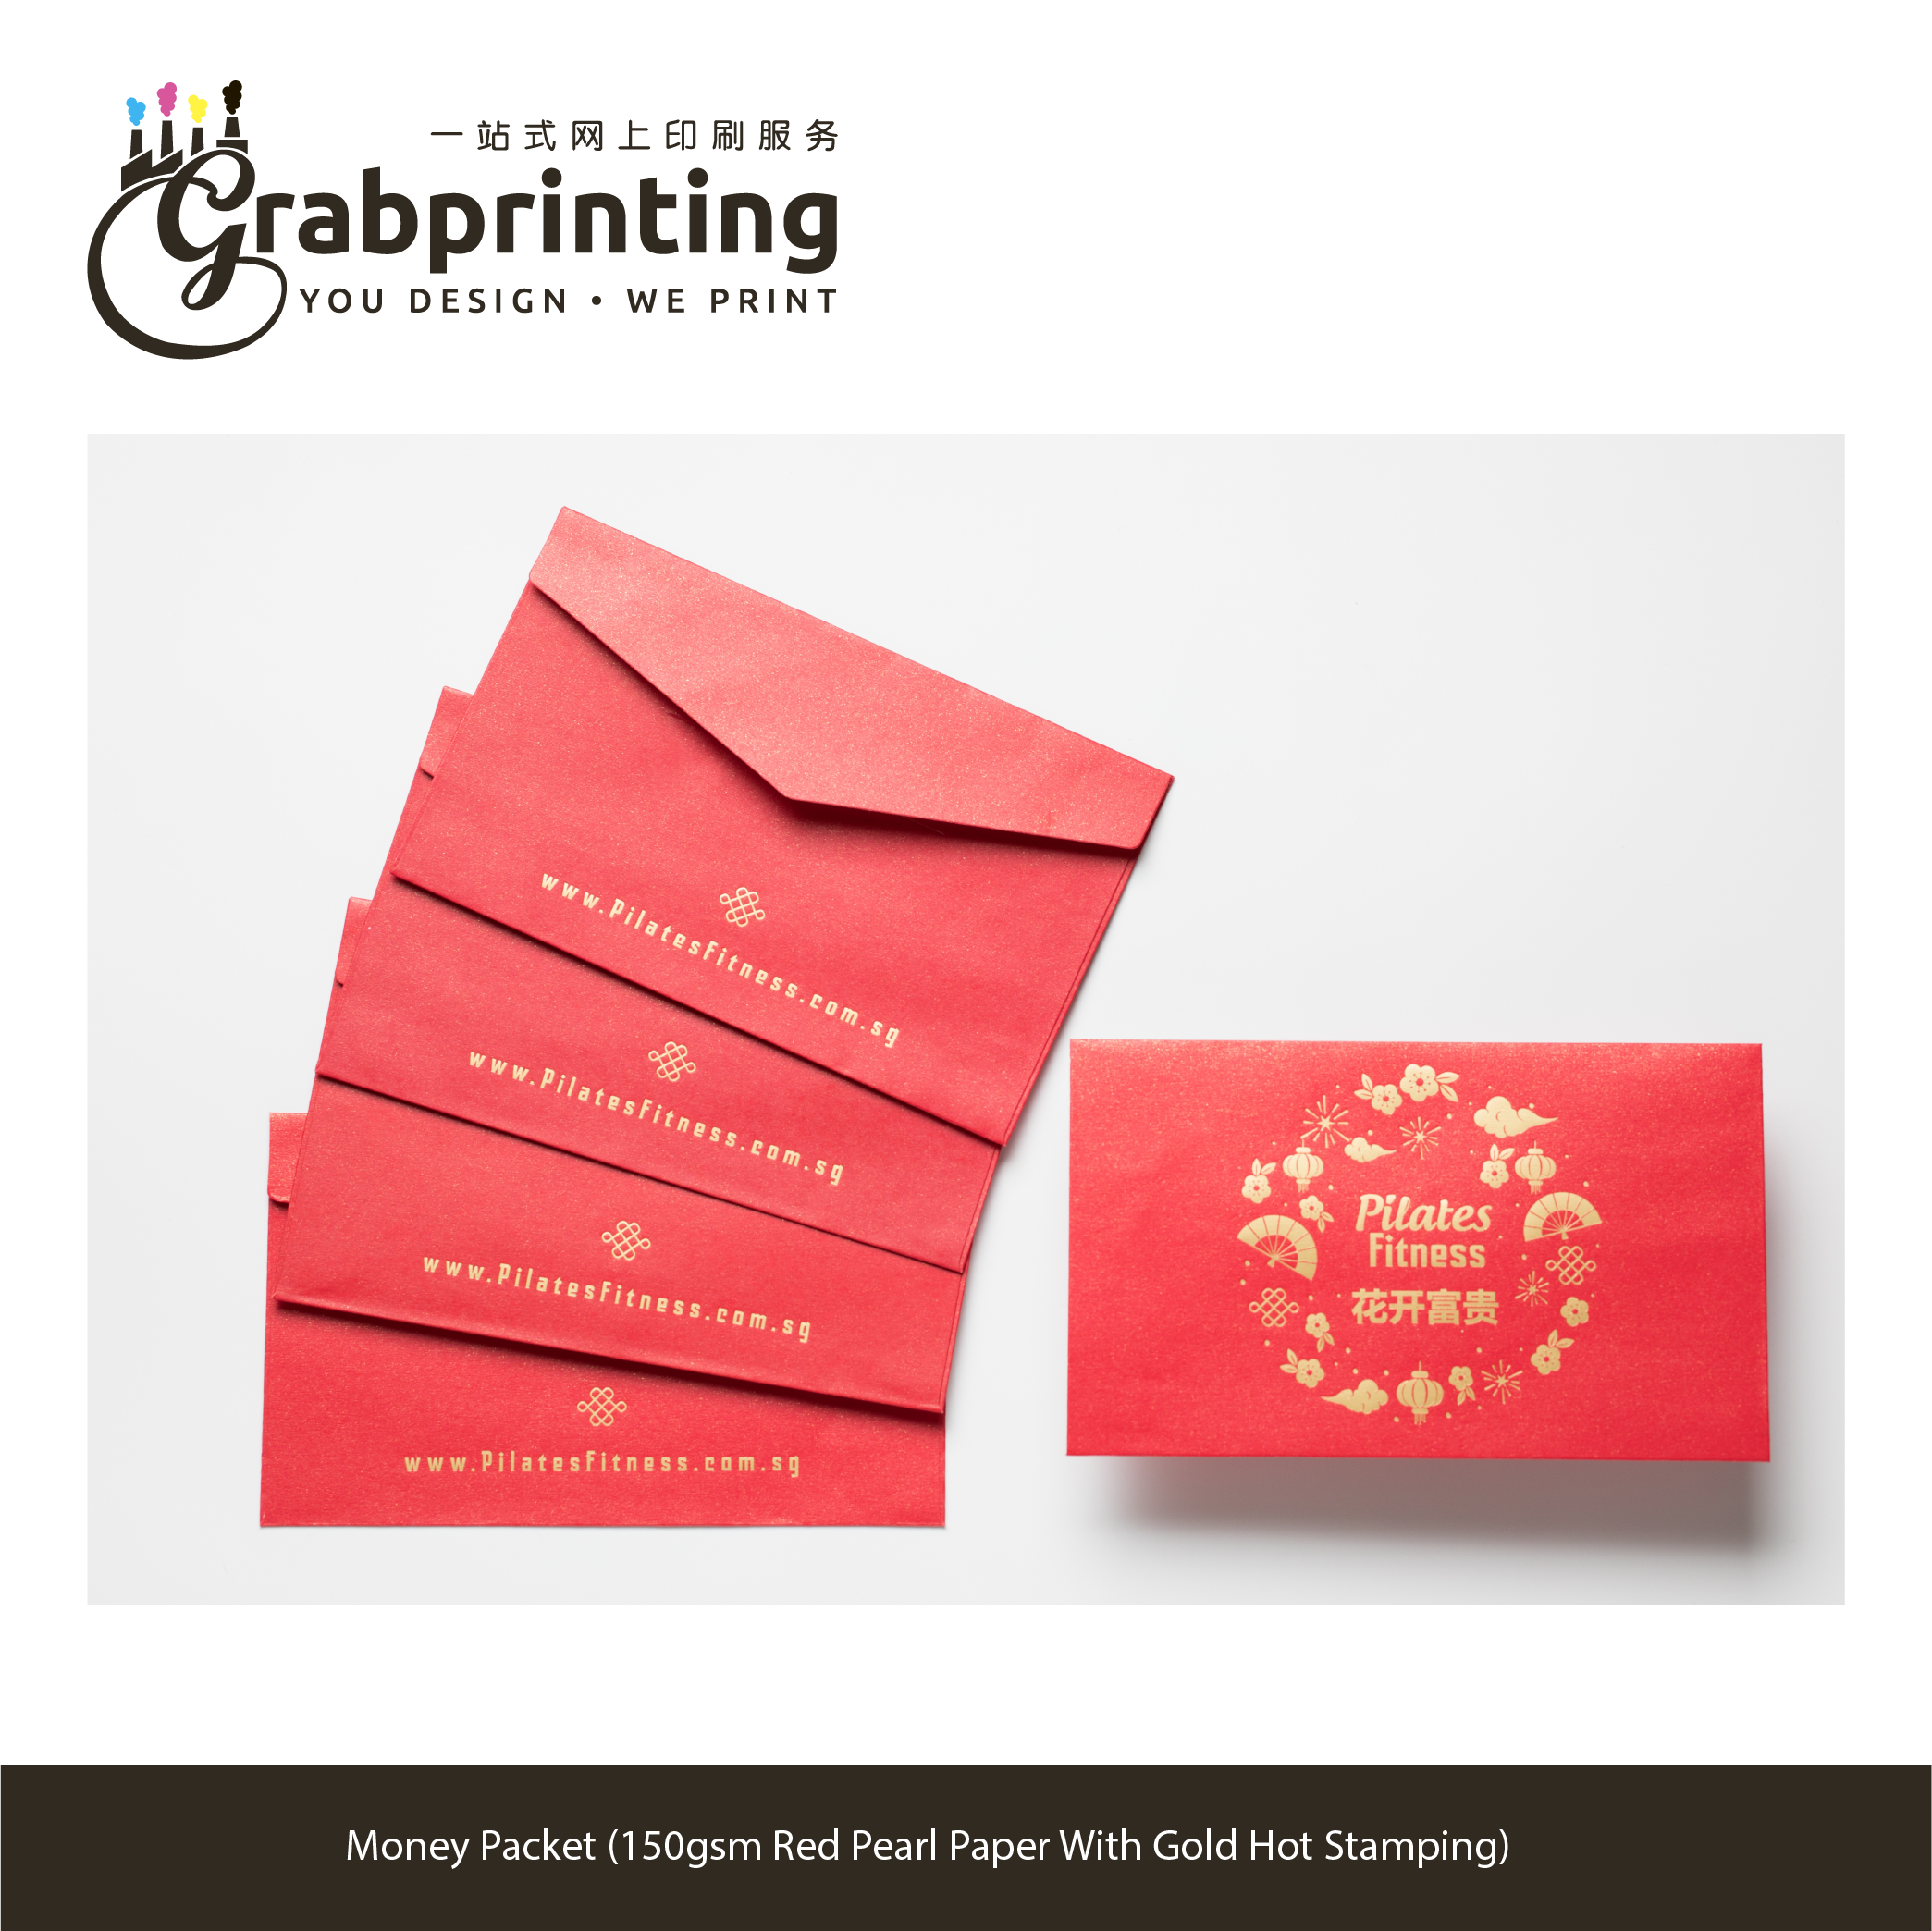 Custom Money Packet Printing (Pearl Paper) grabprinting 02Money packet 150gsm red pearl paper with gold hot stamping 501px 501px